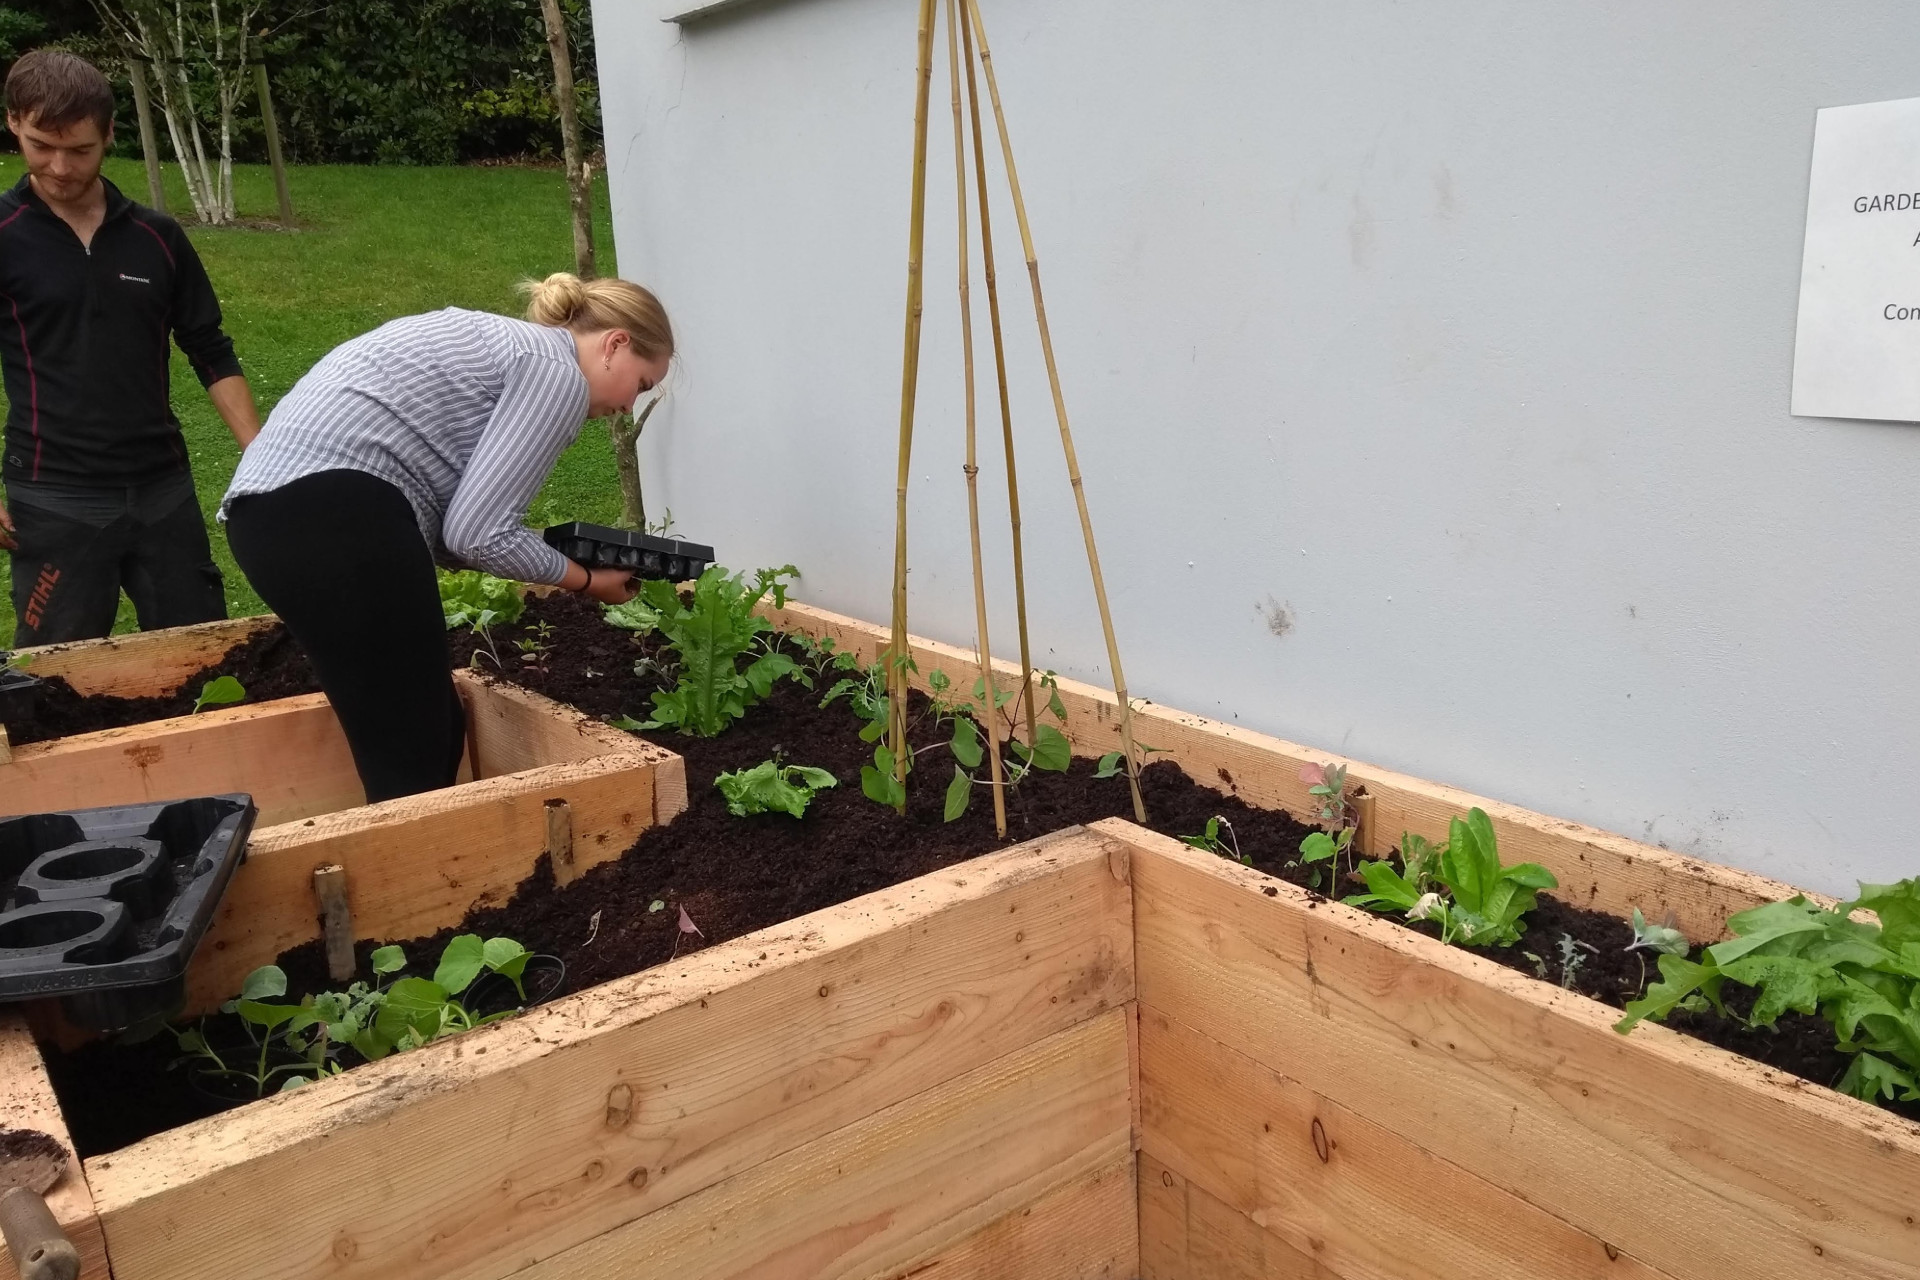 Incredible Edible Ambleside volunteers planting up a veg bed